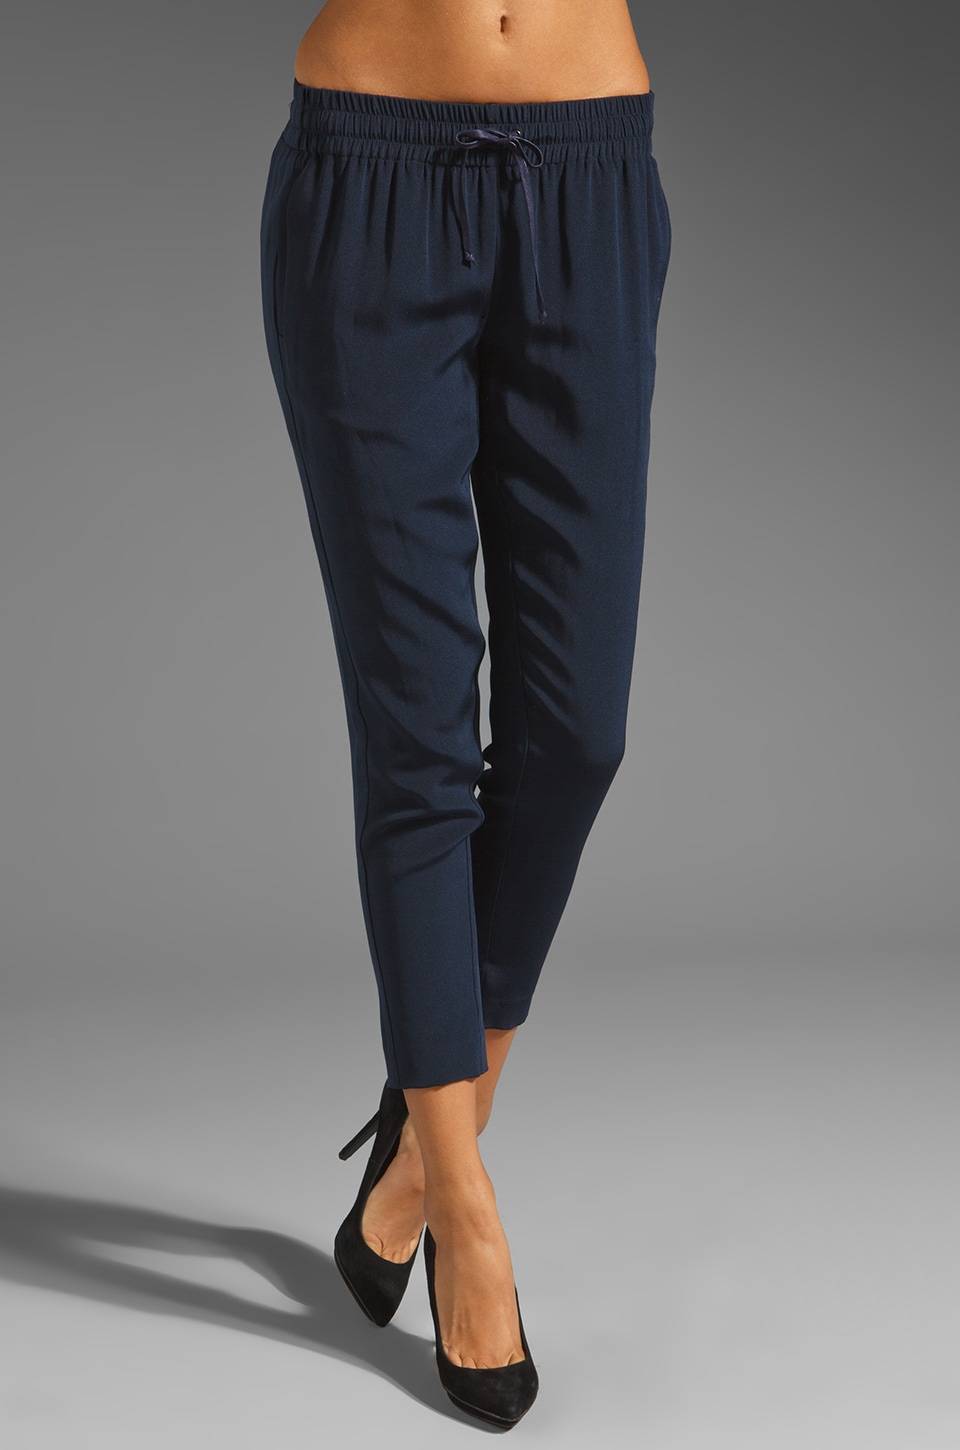 Elizabeth and James Jaidon Tux Pant in Navy